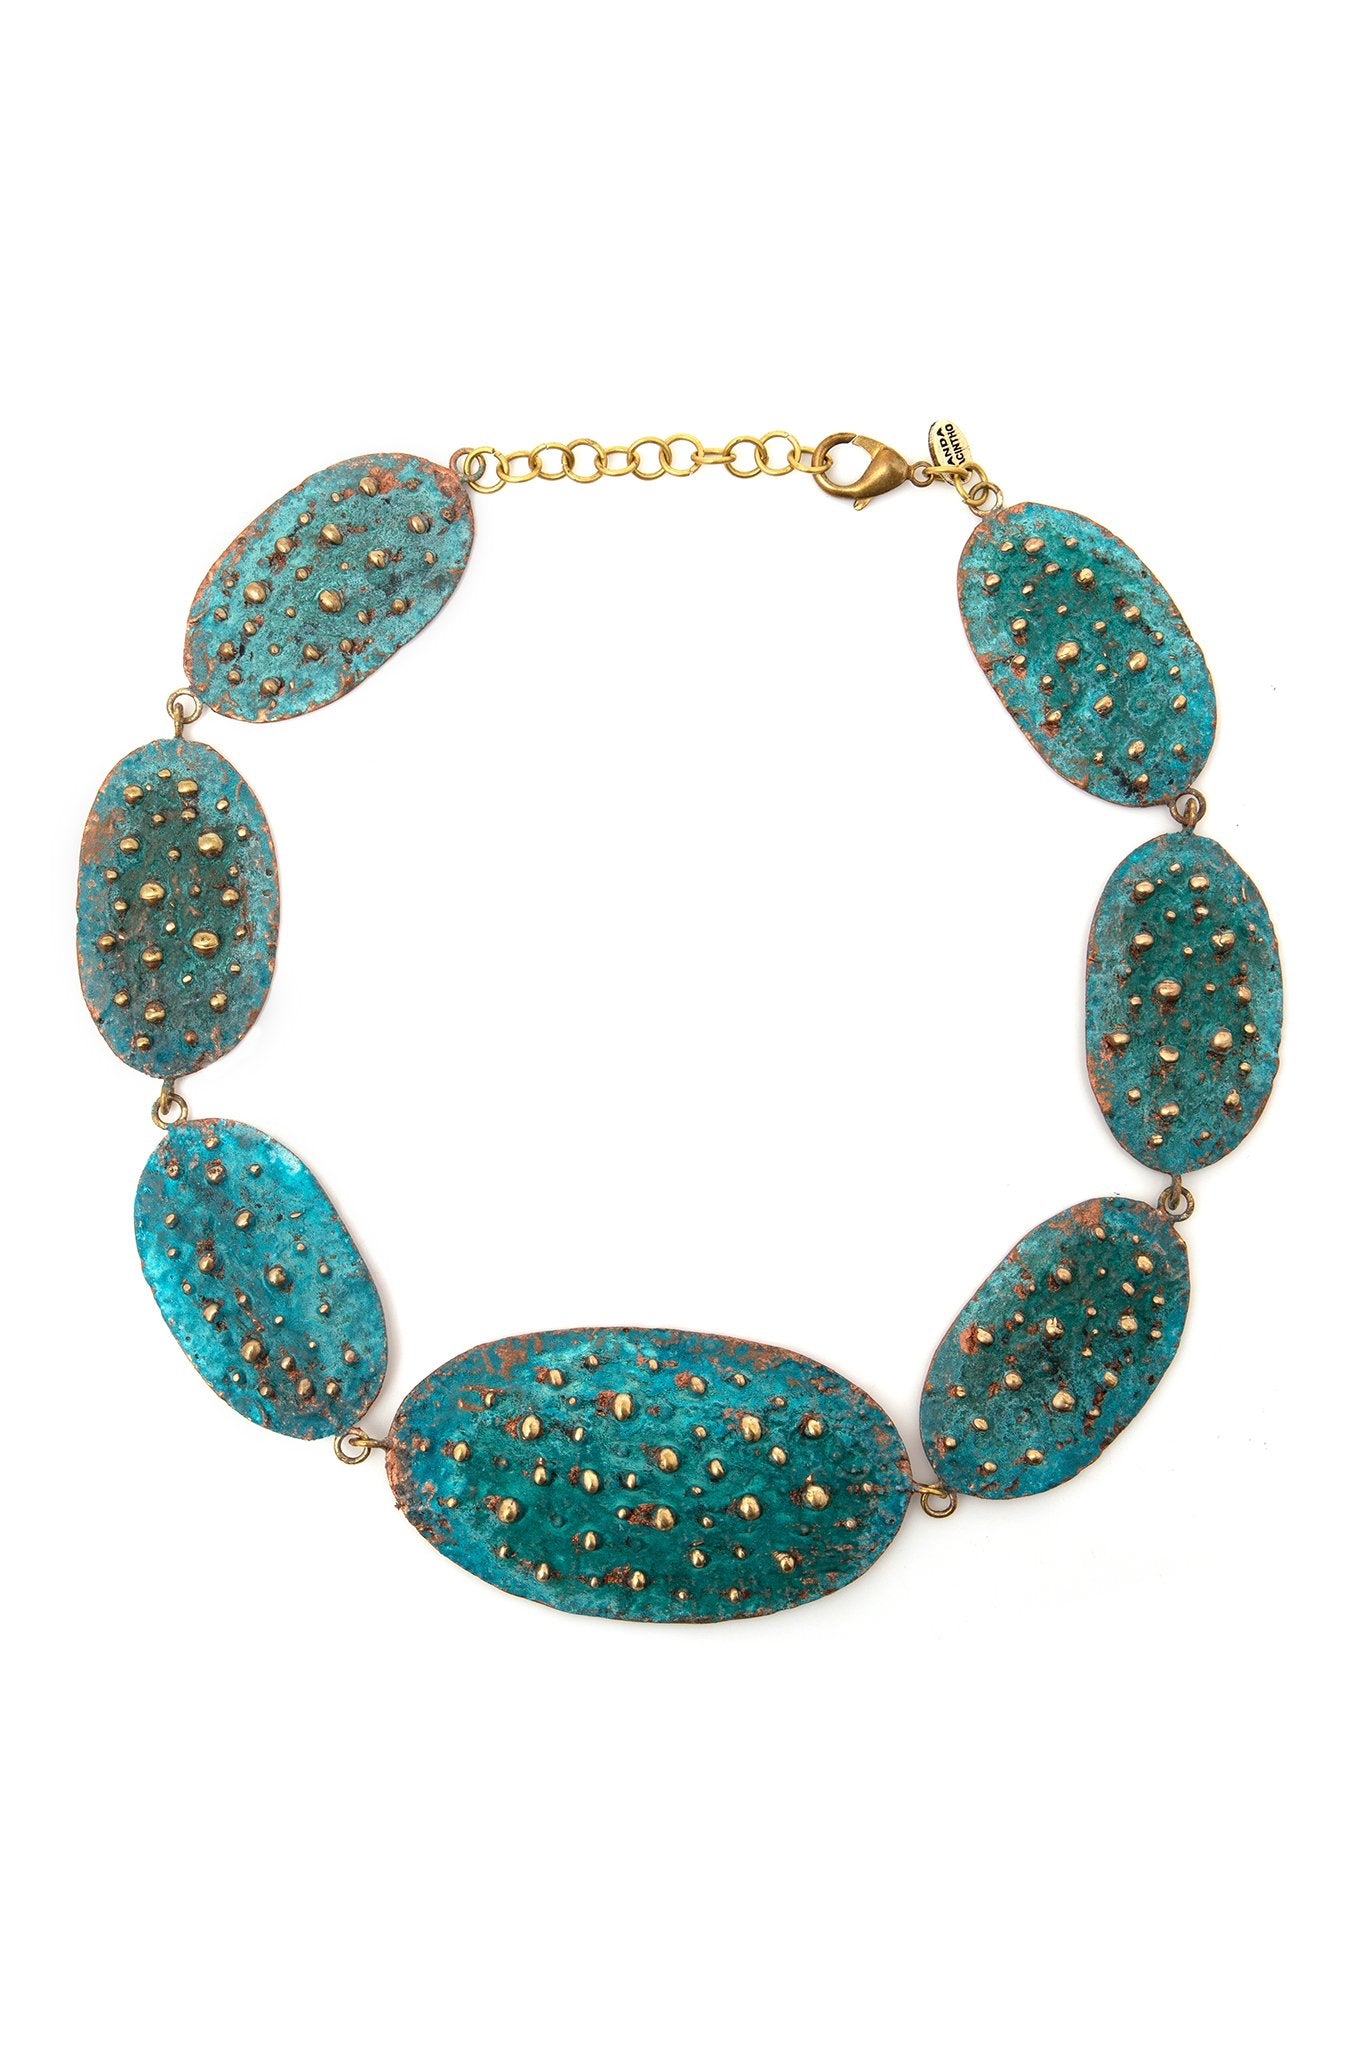 GREEN BIG OVAL PATINA NECKLACE